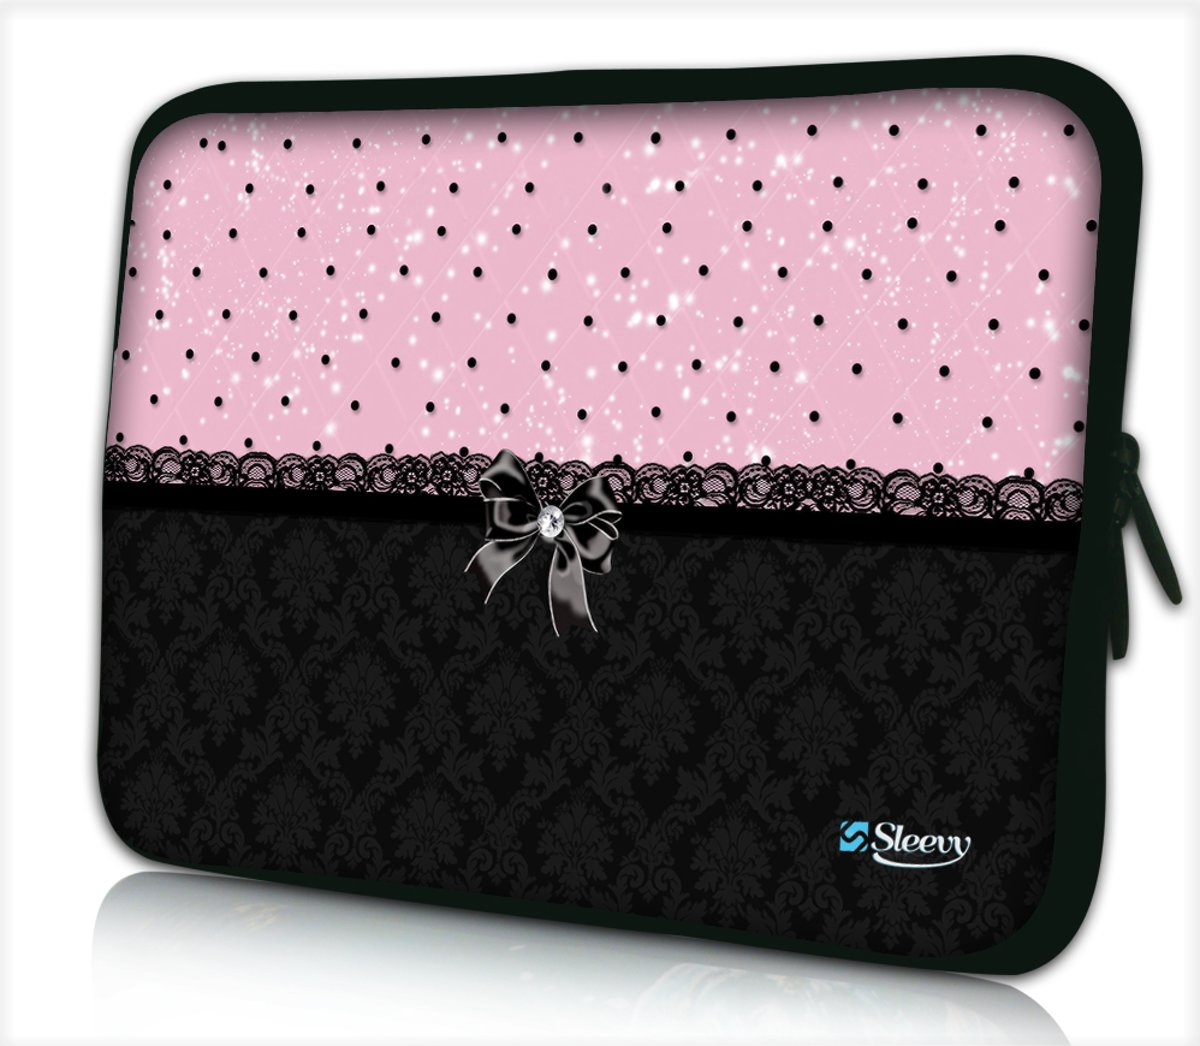 Tablet hoes / laptophoes 10,1 inch patroon chic roze zwart - Sleevy - Laptop sleeve - Macbook hoes - beschermhoes - tabletsleeve - tablet sleeve - ipad sleeve